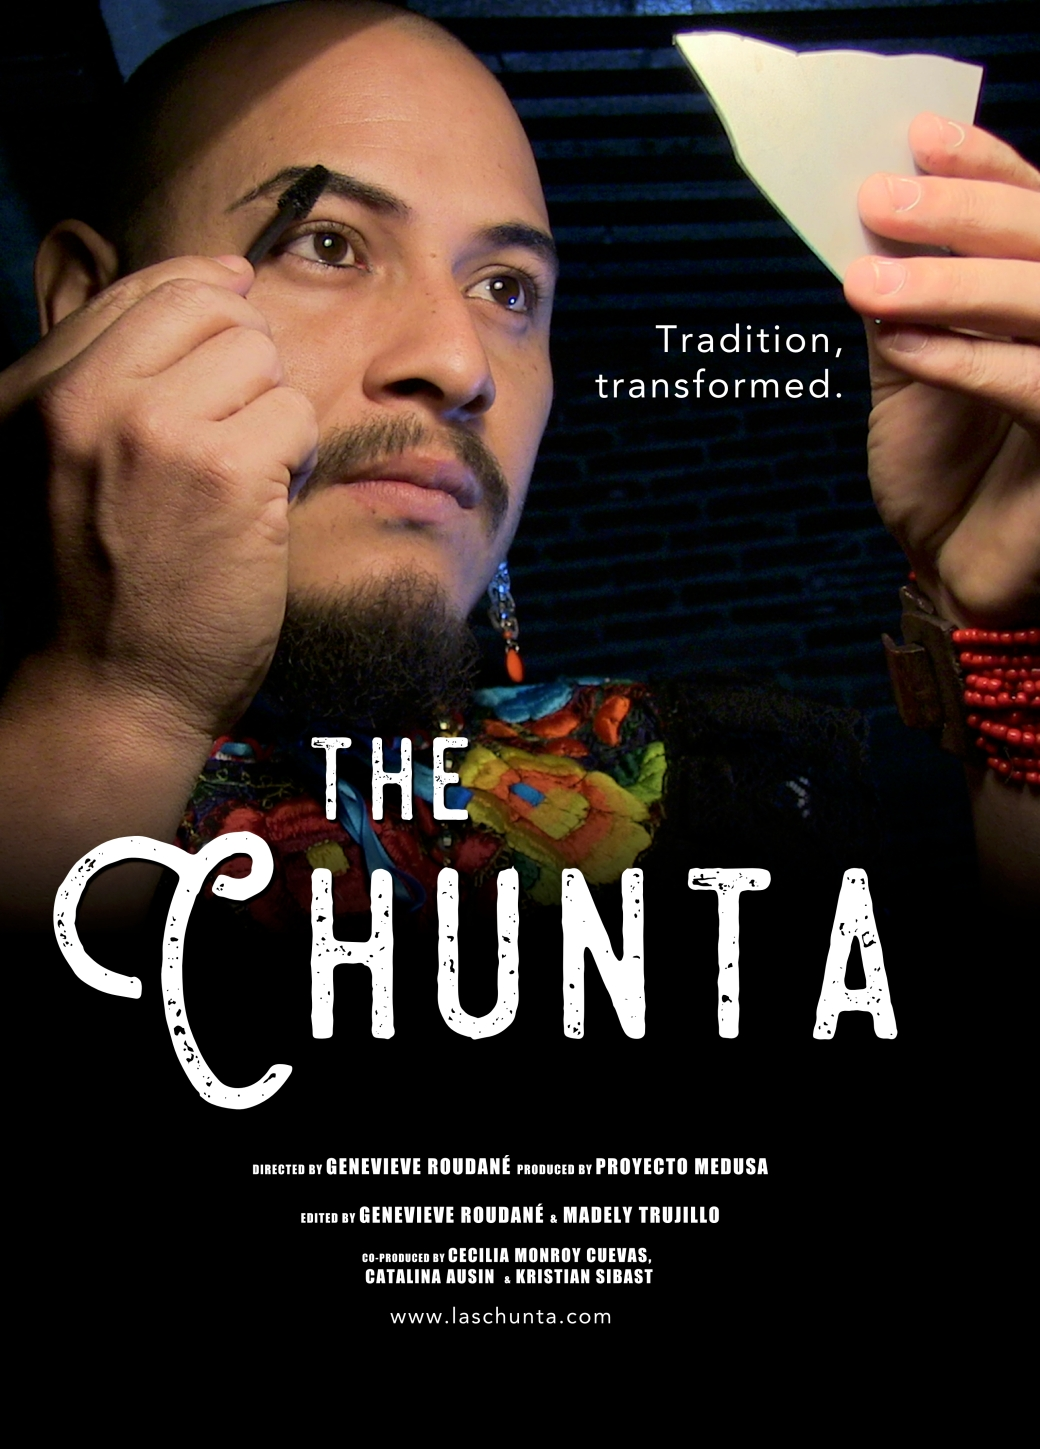 TheChunta-poster_01 copy